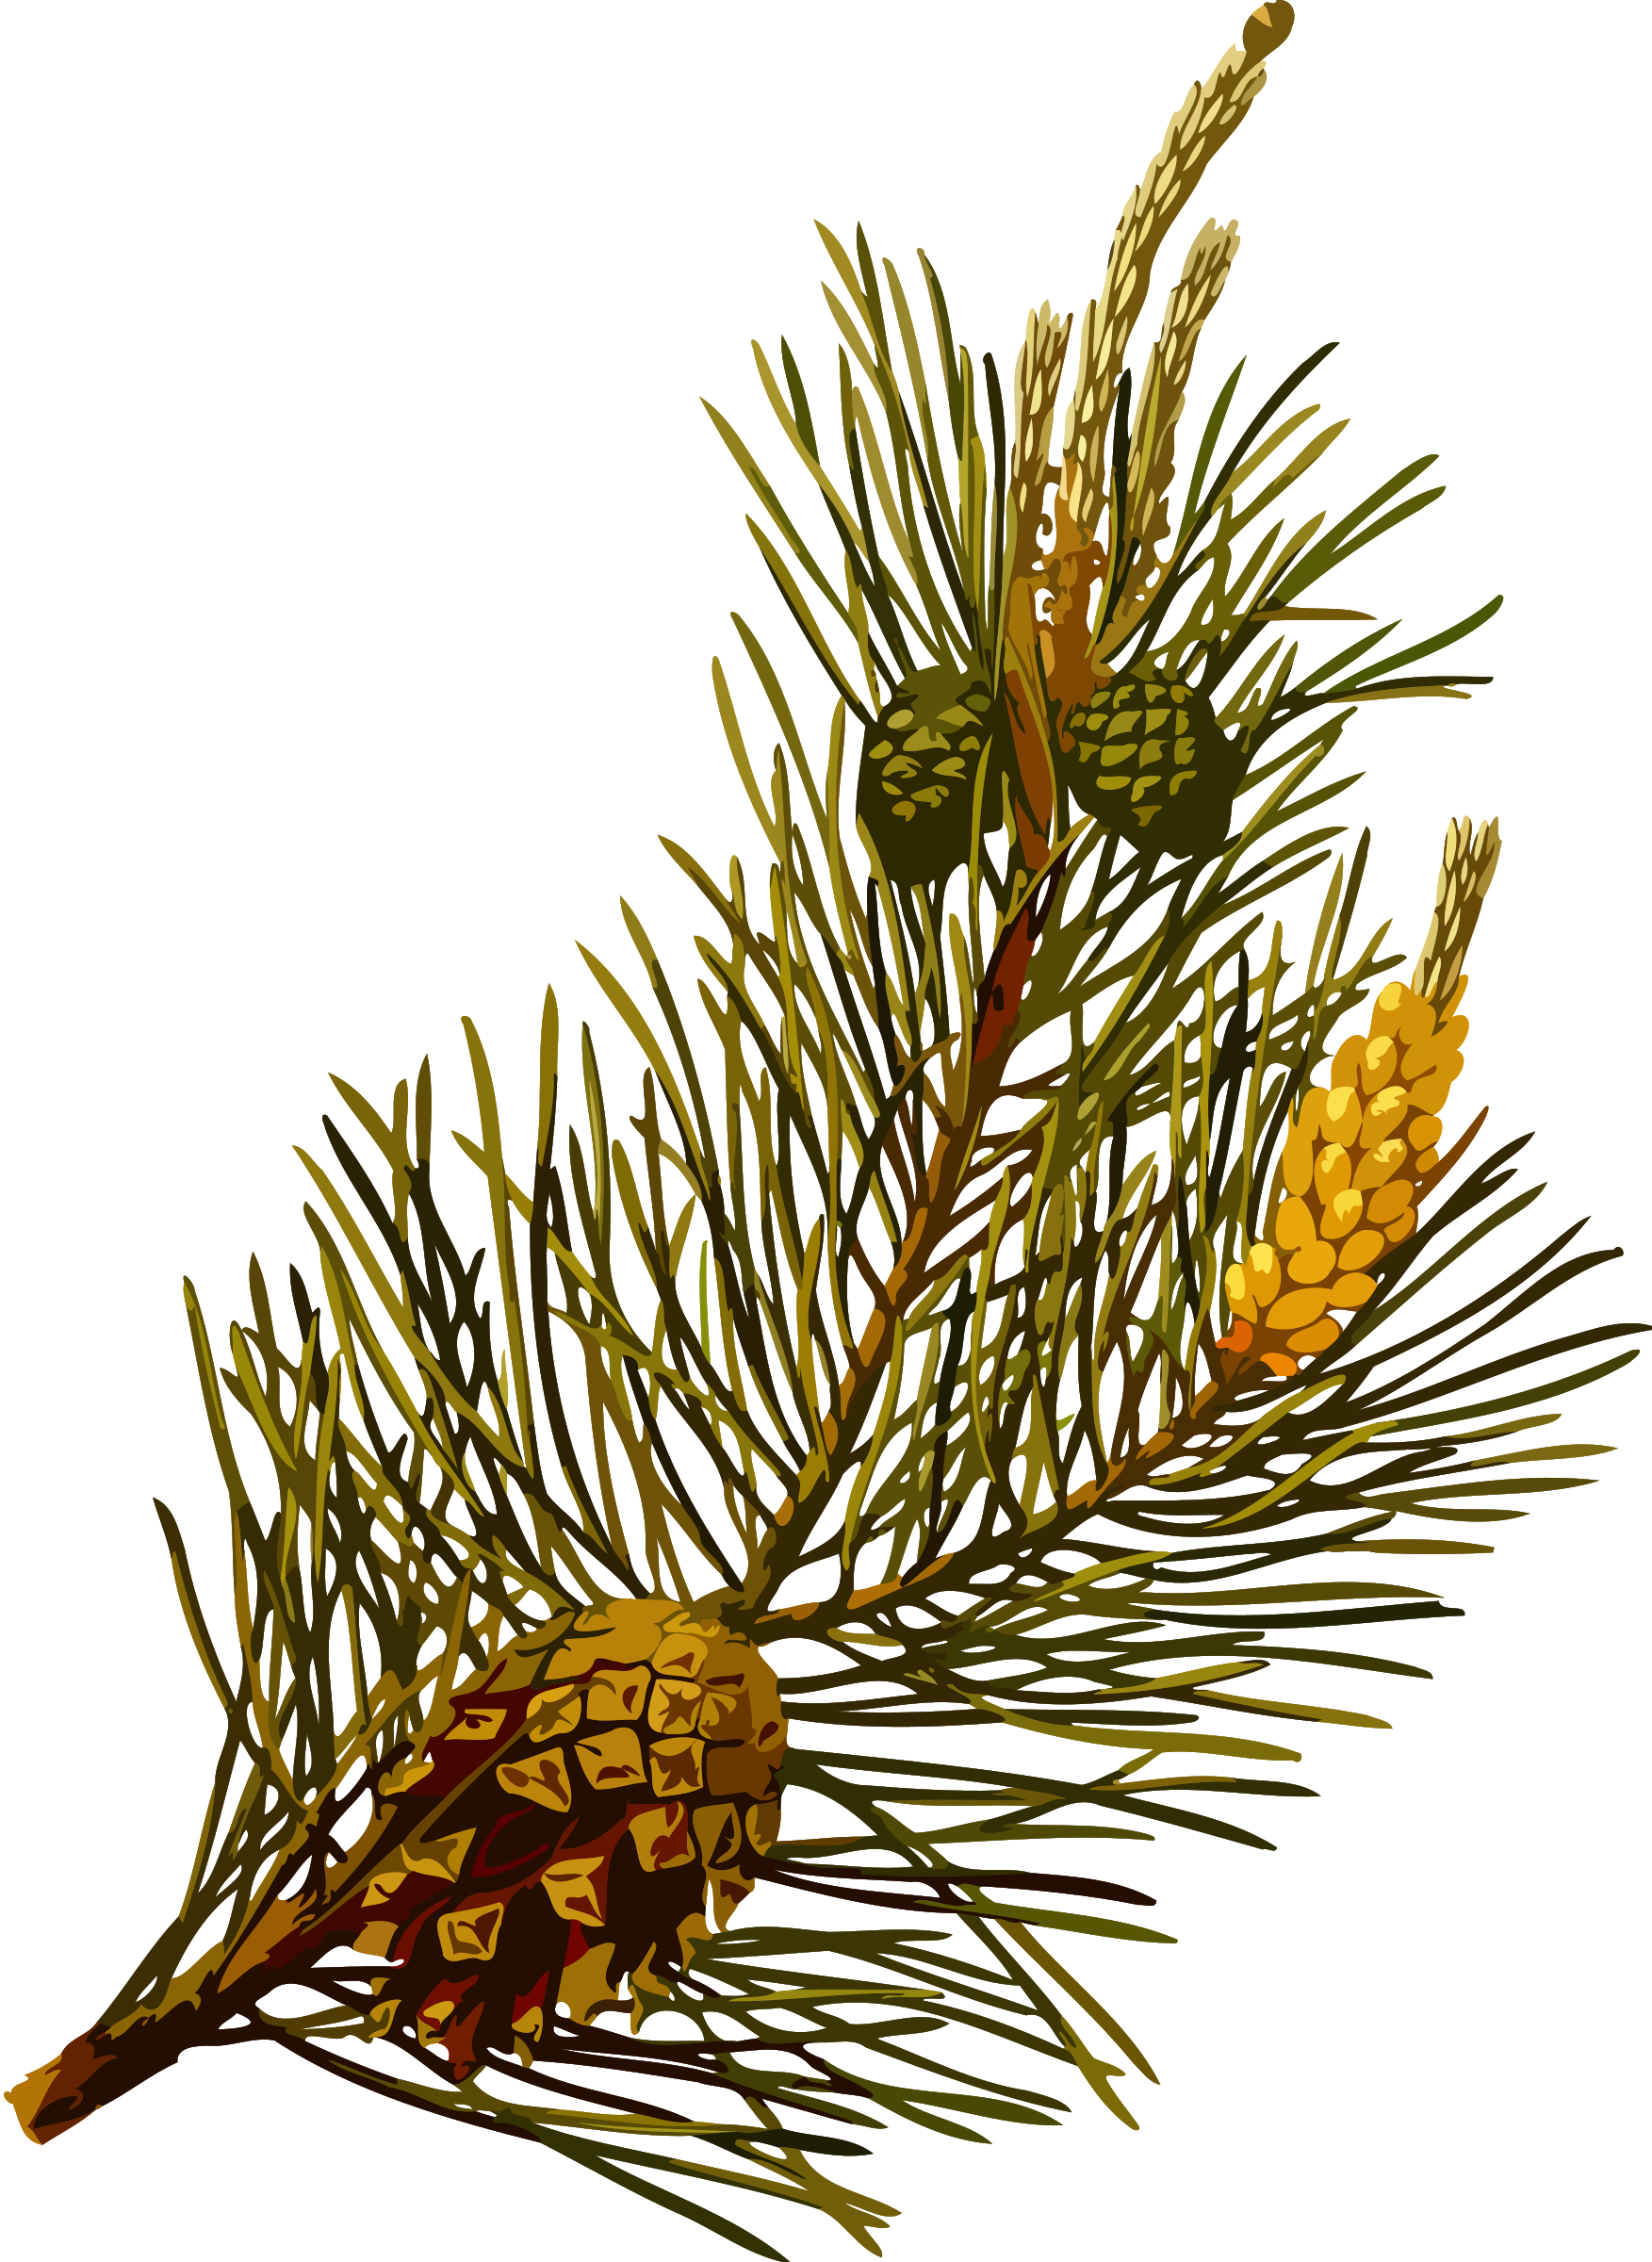 Scots pine (low resolution) by Firkin